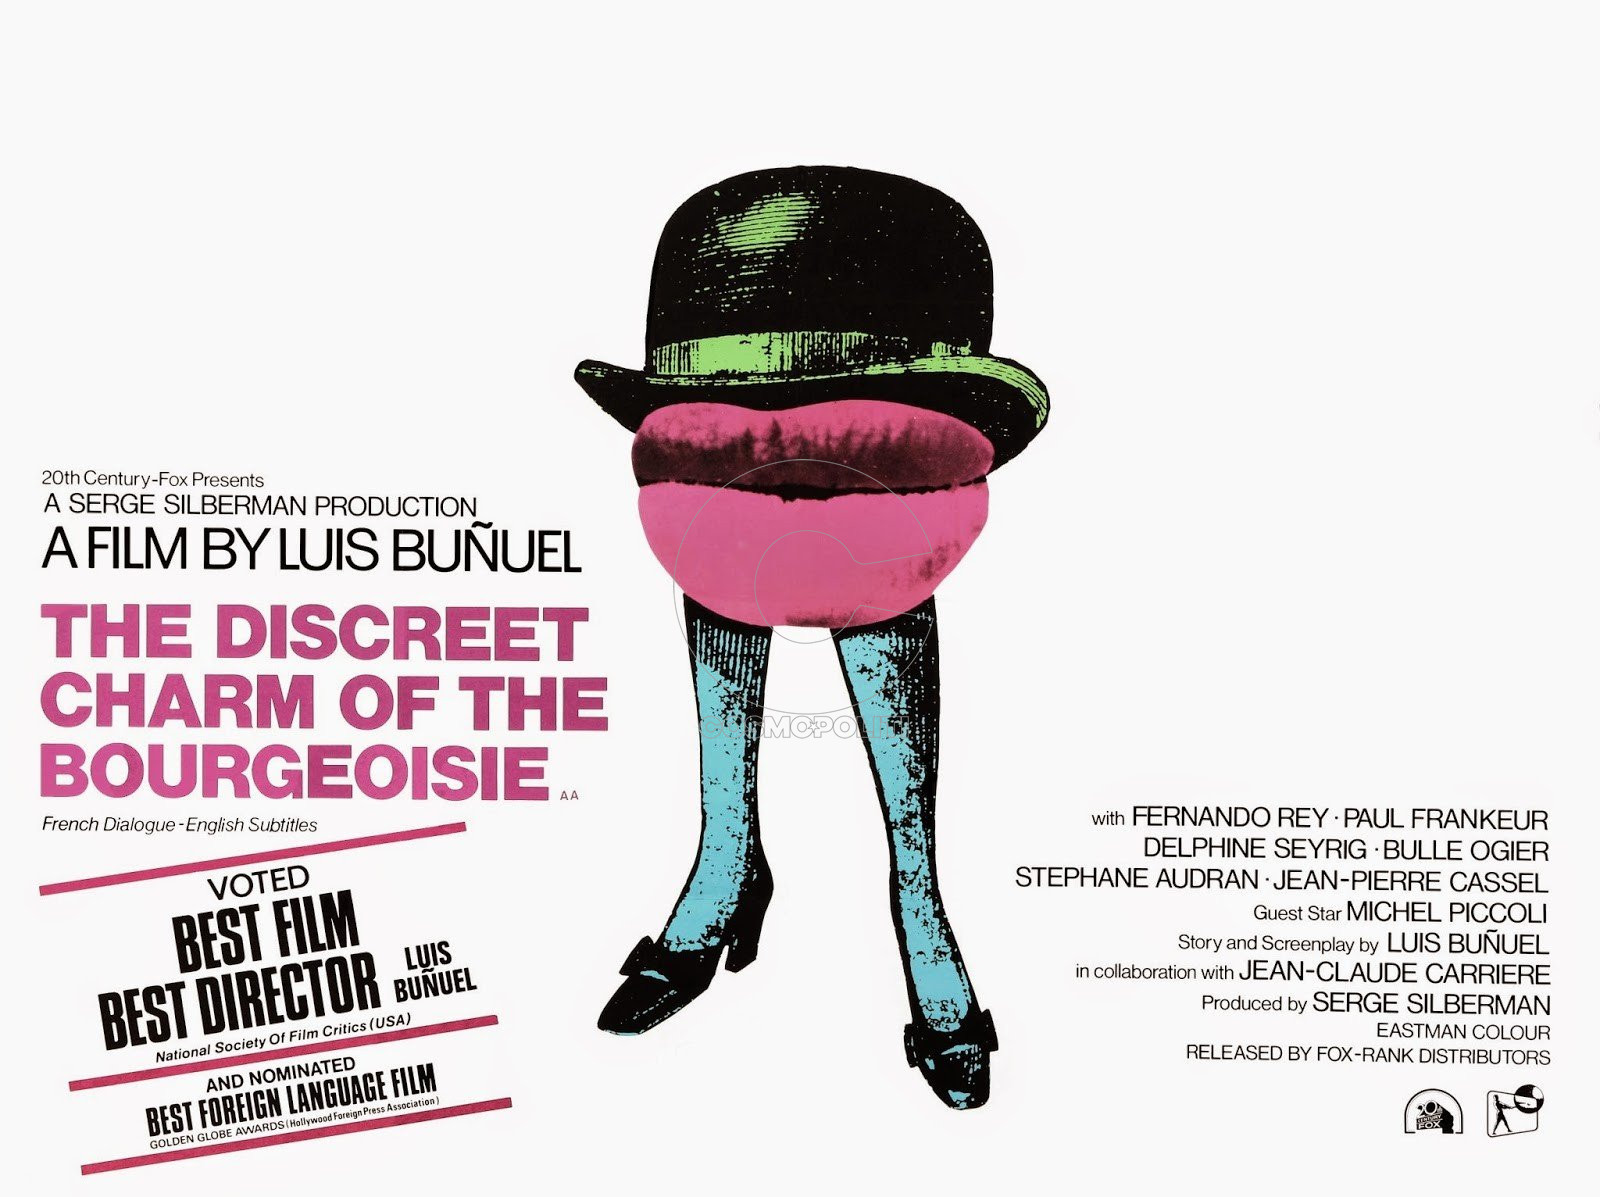 107798-The_Discreet_Charm_of_the_Bourgeoisie-Luis_Bunuel